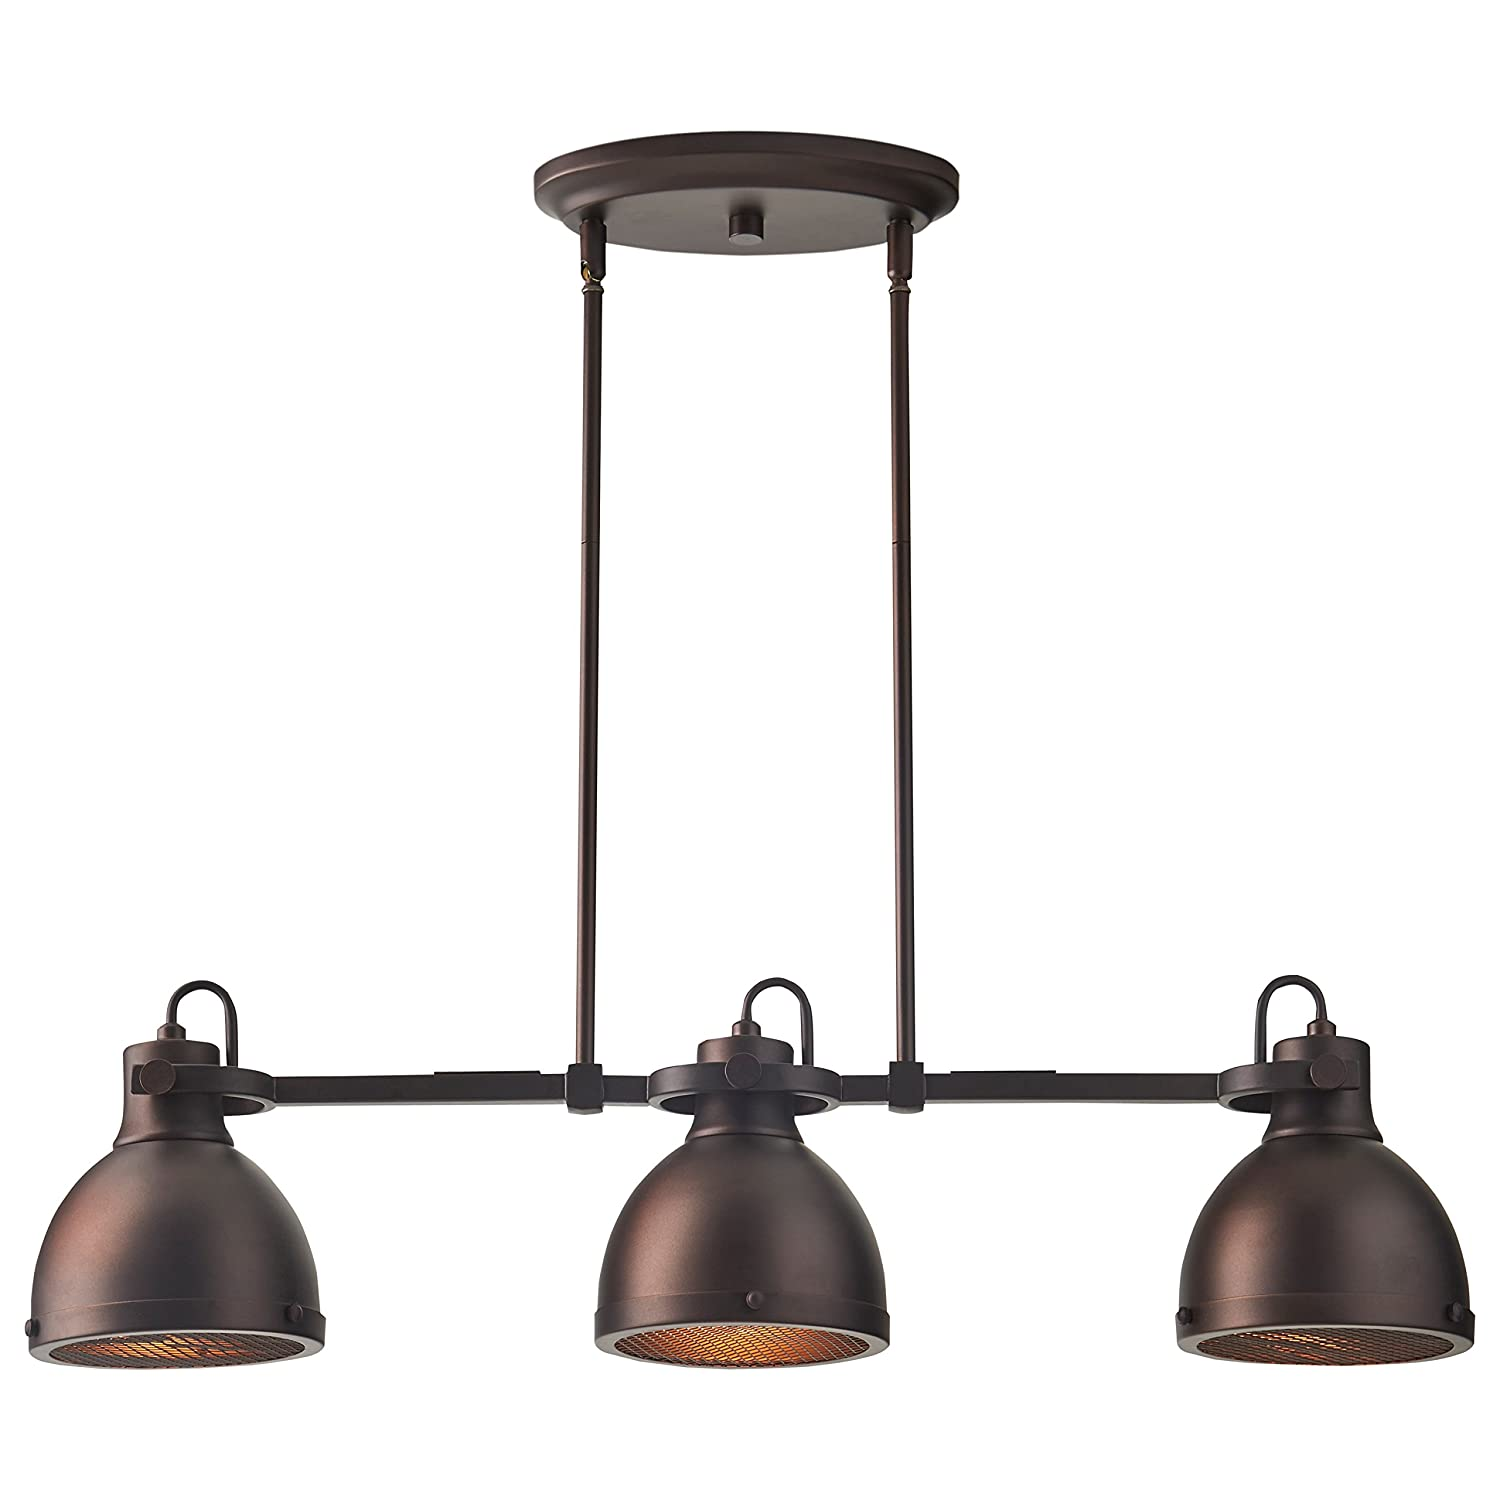 Stone Beam Emmons Triple Ceiling Mount Pendant Lighting Chandelier With Light Bulbs – 31.5 x 6.25 Inches, 8.25 – 56.25 Inch Cord, Oil-Rubbed Bronze